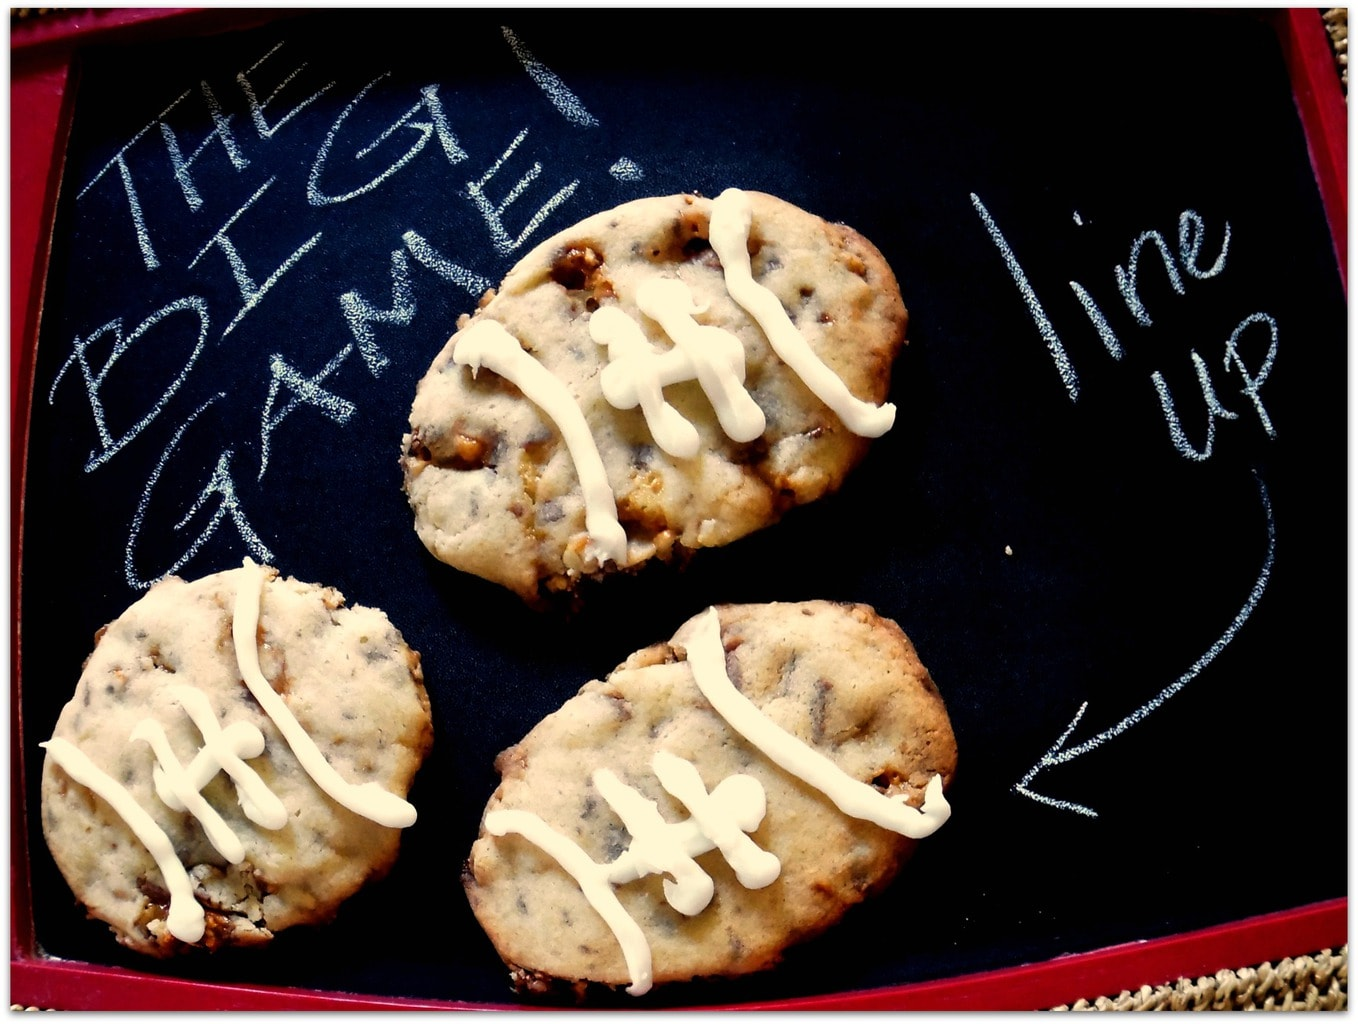 Need a great recipe to bring to that tailgate party? Why not make these Snickers Snaps Cookies? I love desserts that don't need utensils, too, and you can grab these cookies and get back to the game!